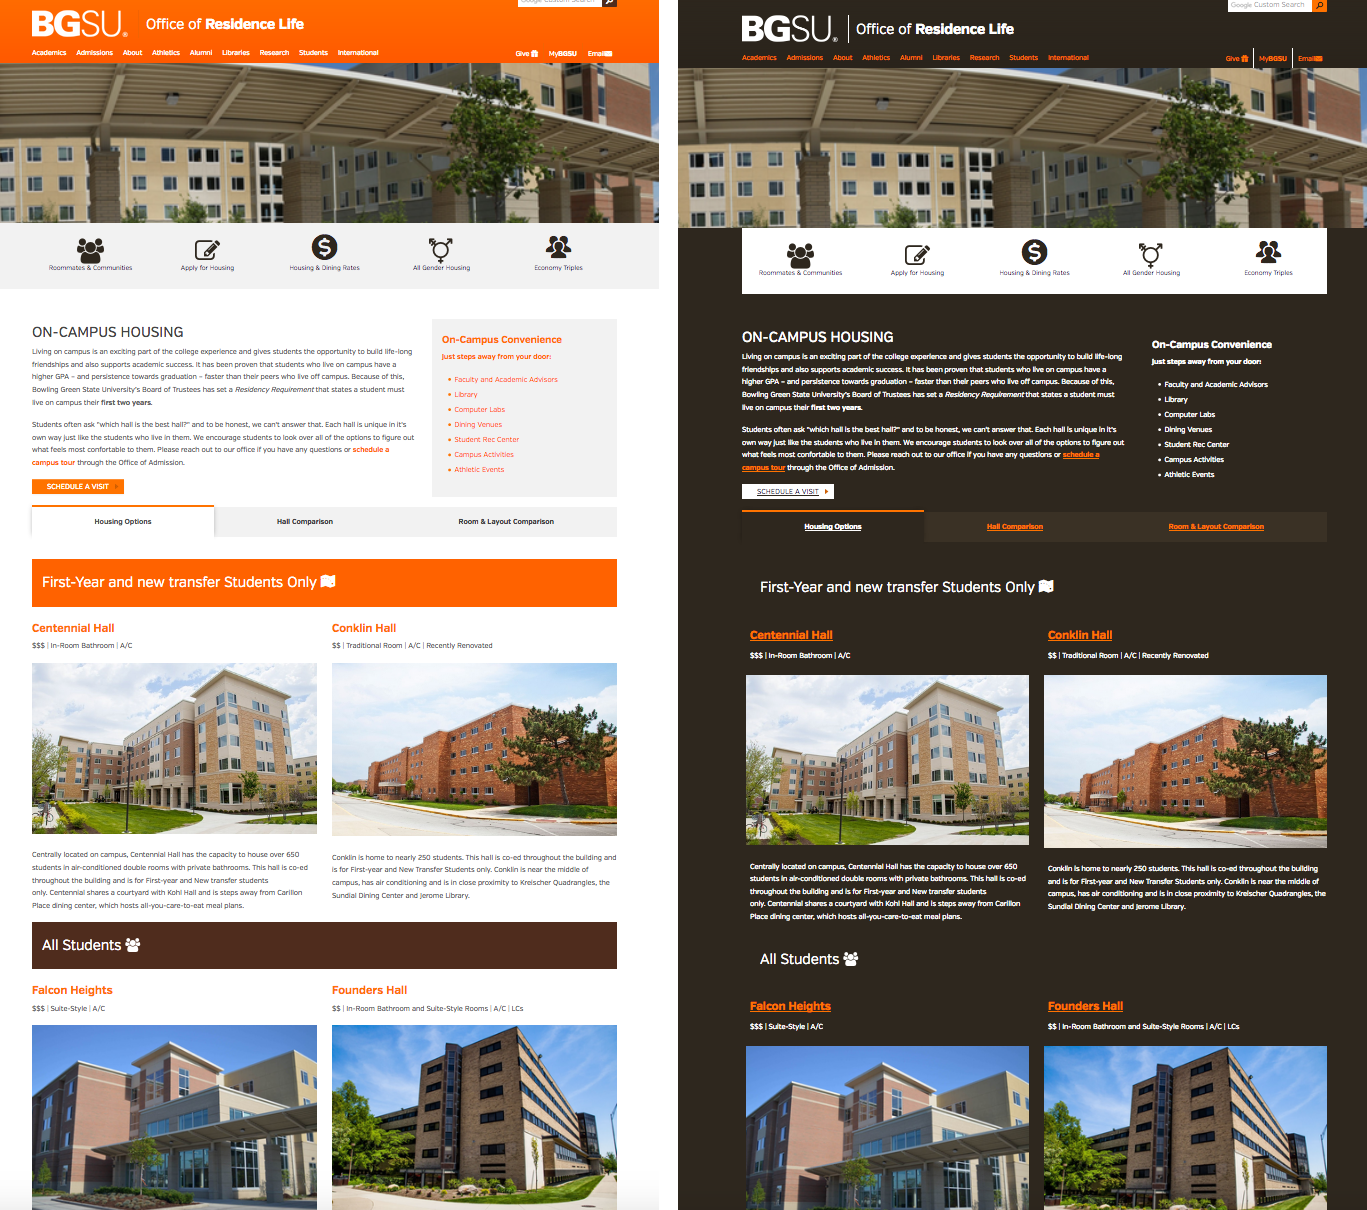 Bowling Green State University webpages, in normal and high-contrast versions.